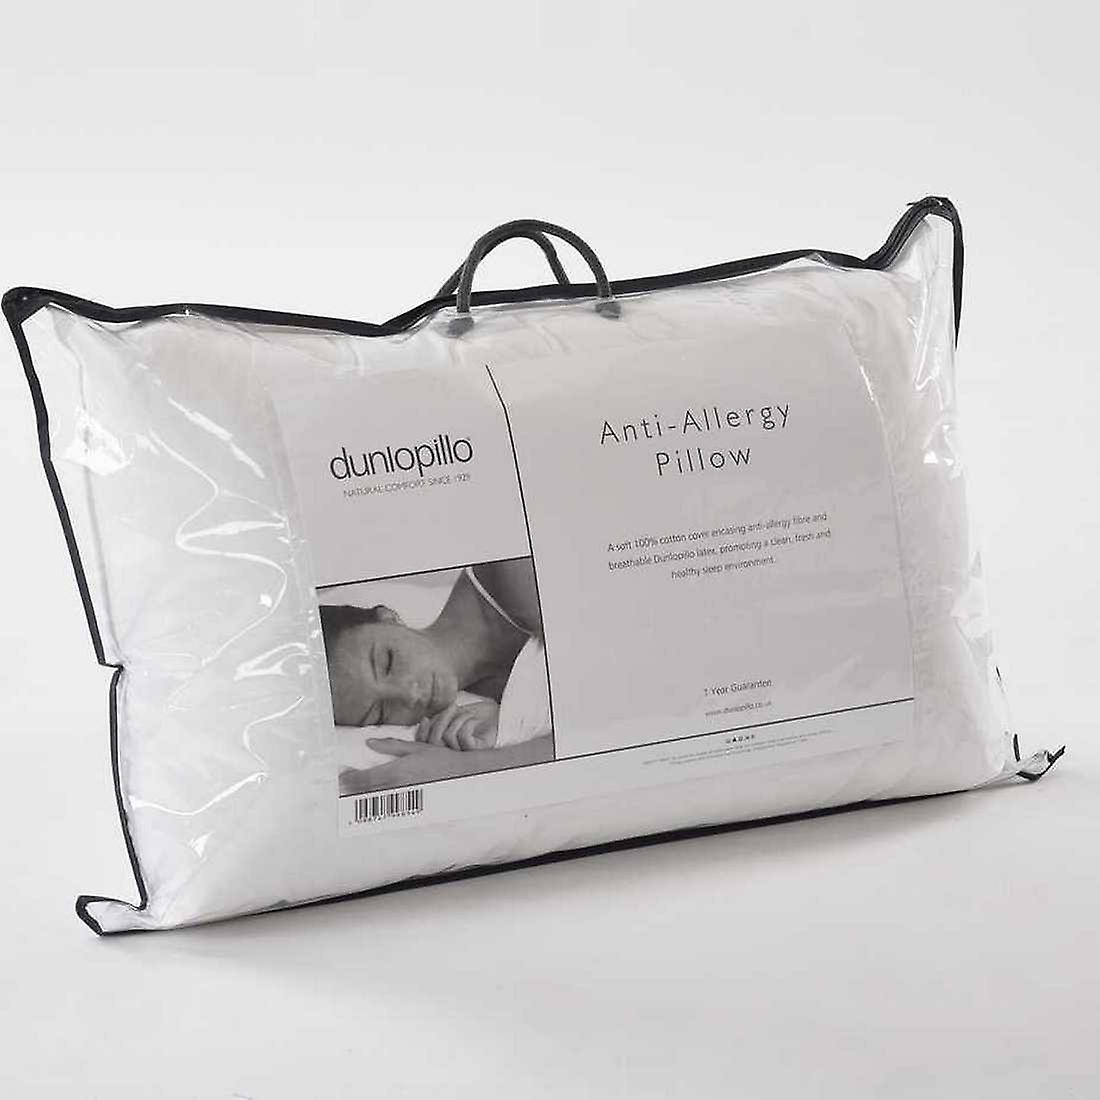 Dunlopillo Anti Allergy Pillow with Breathable Latex 1 Year Guarantee